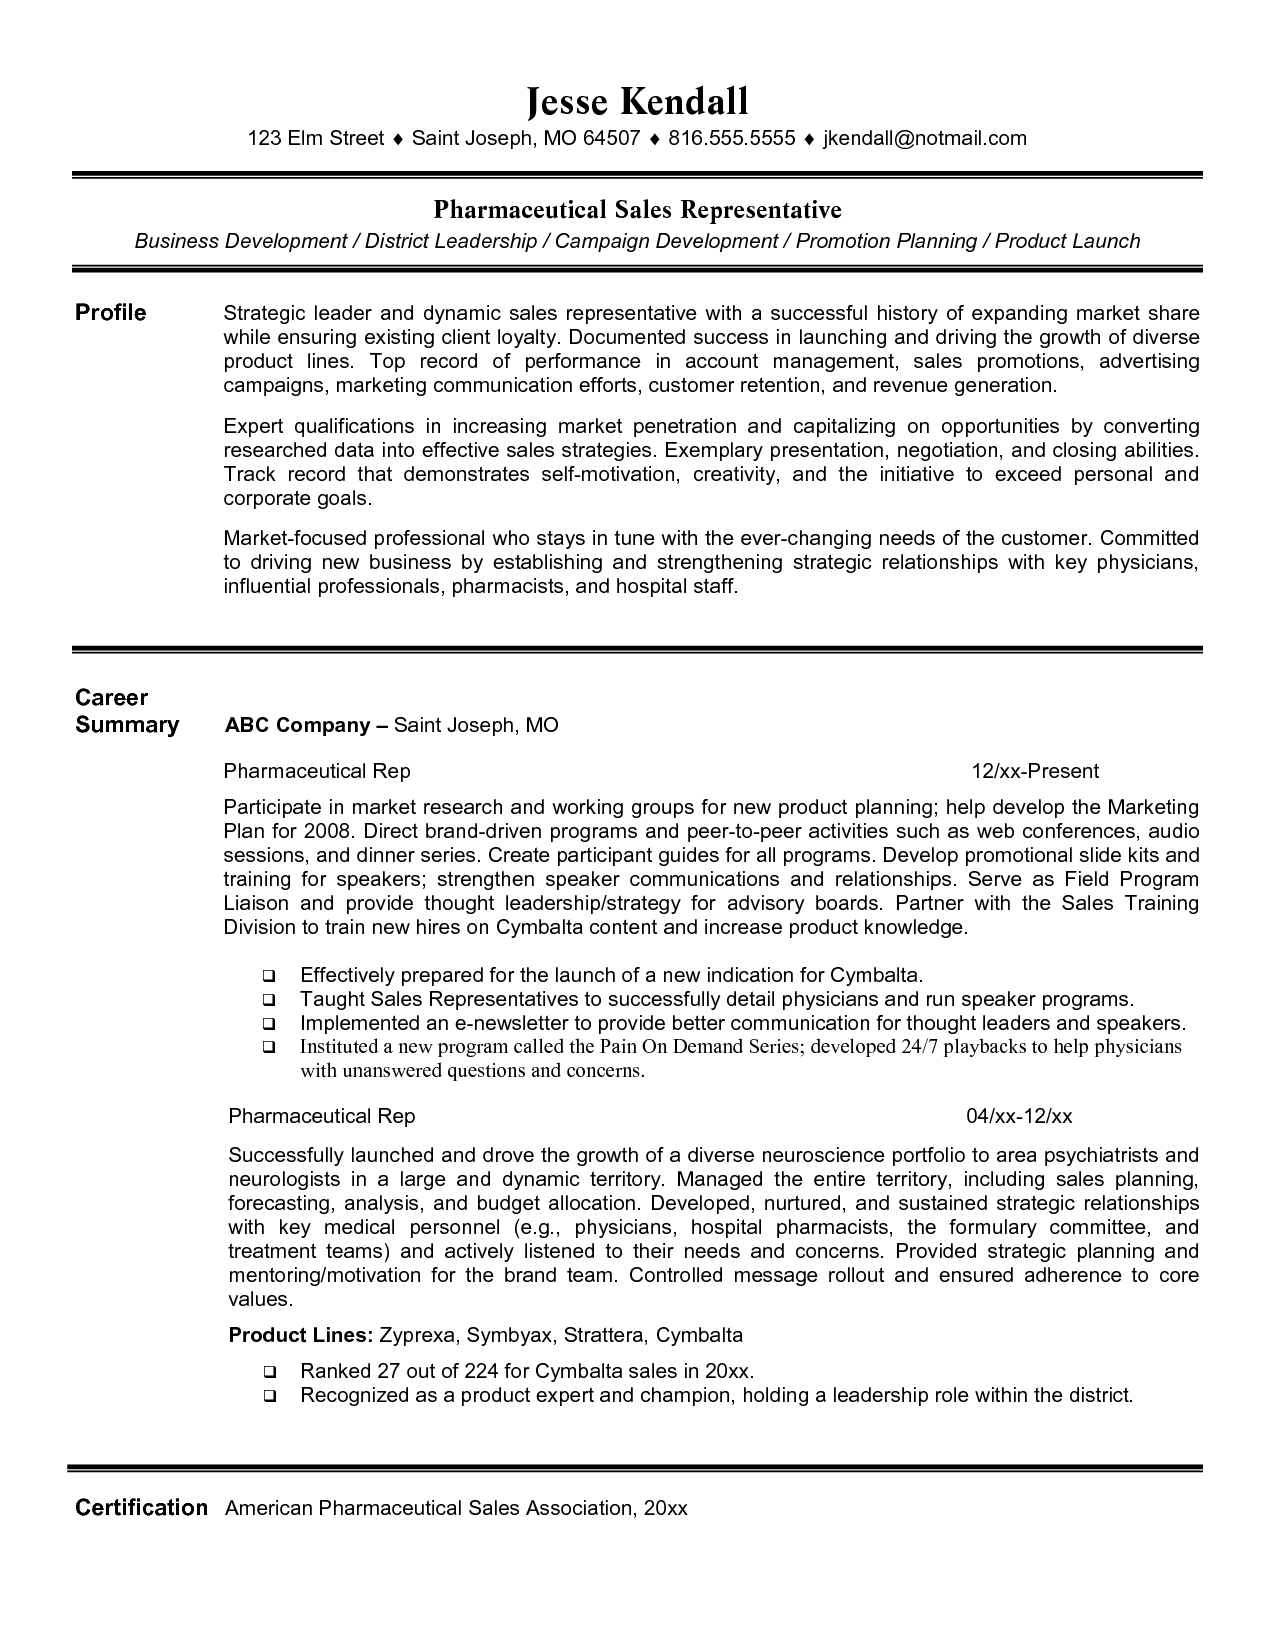 pharmaceutical sales rep resume summary examples